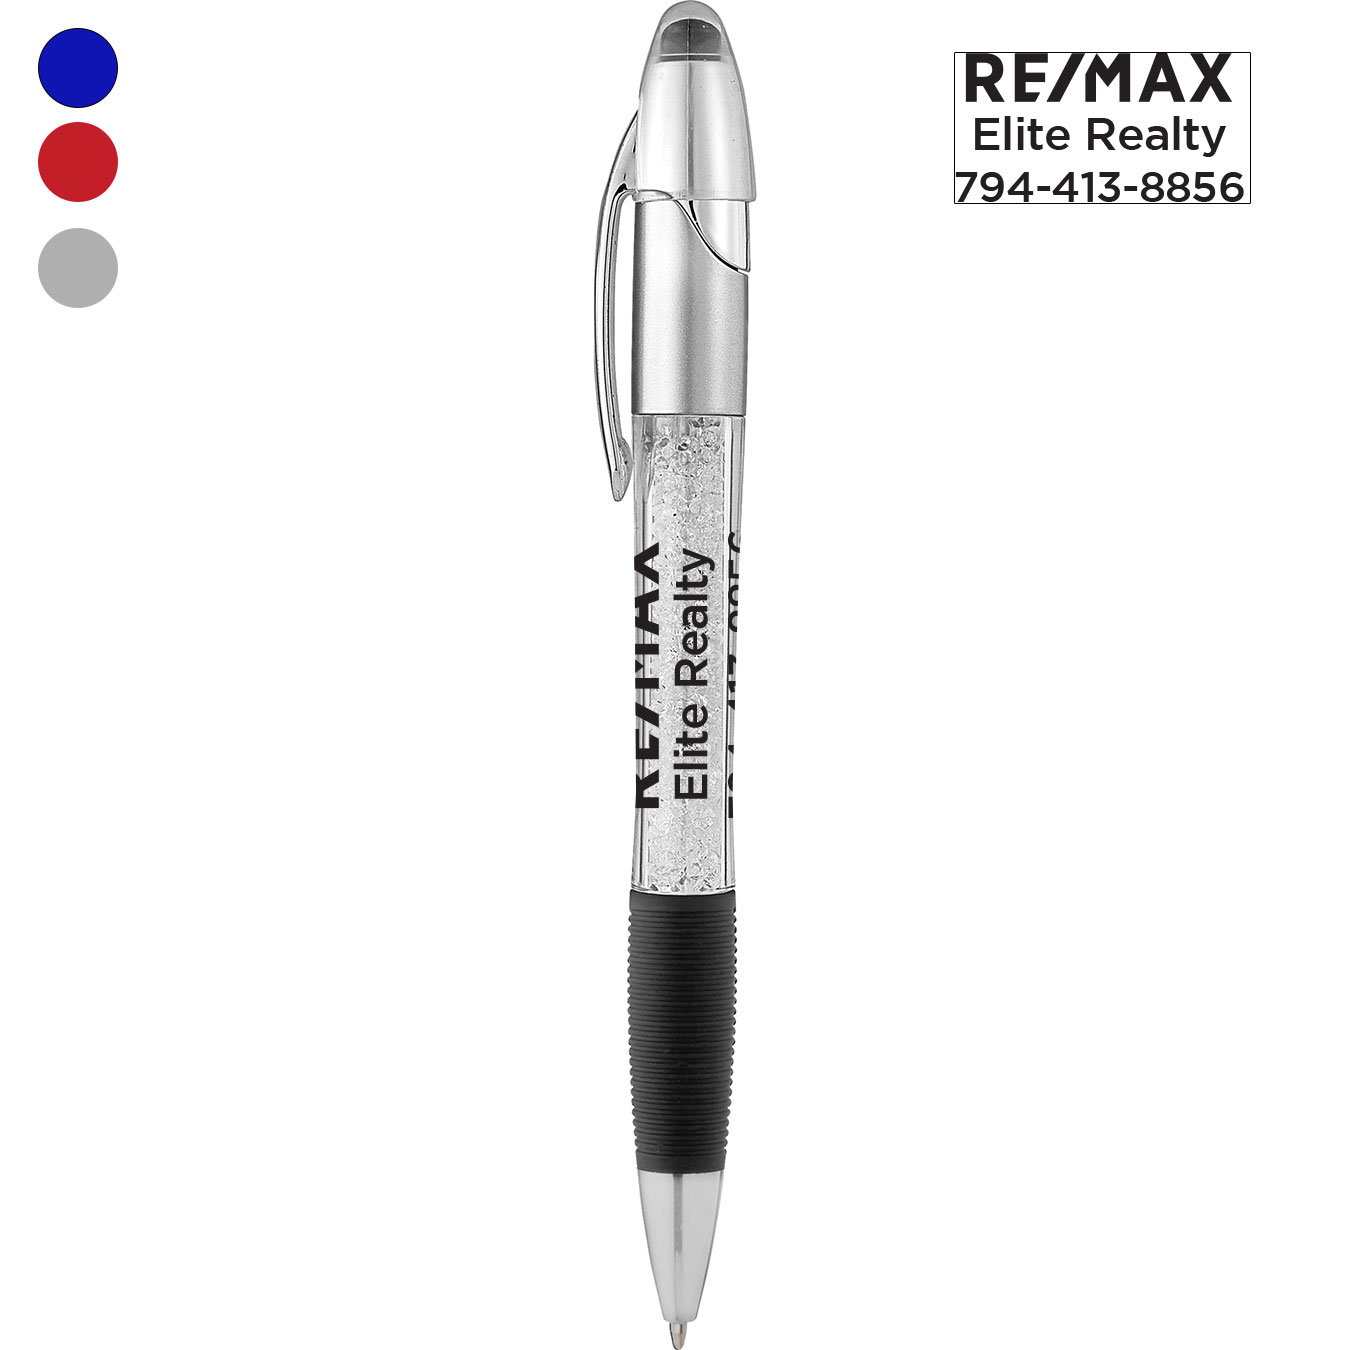 Crystal Light Stylus Pen - Glamour - Personalized